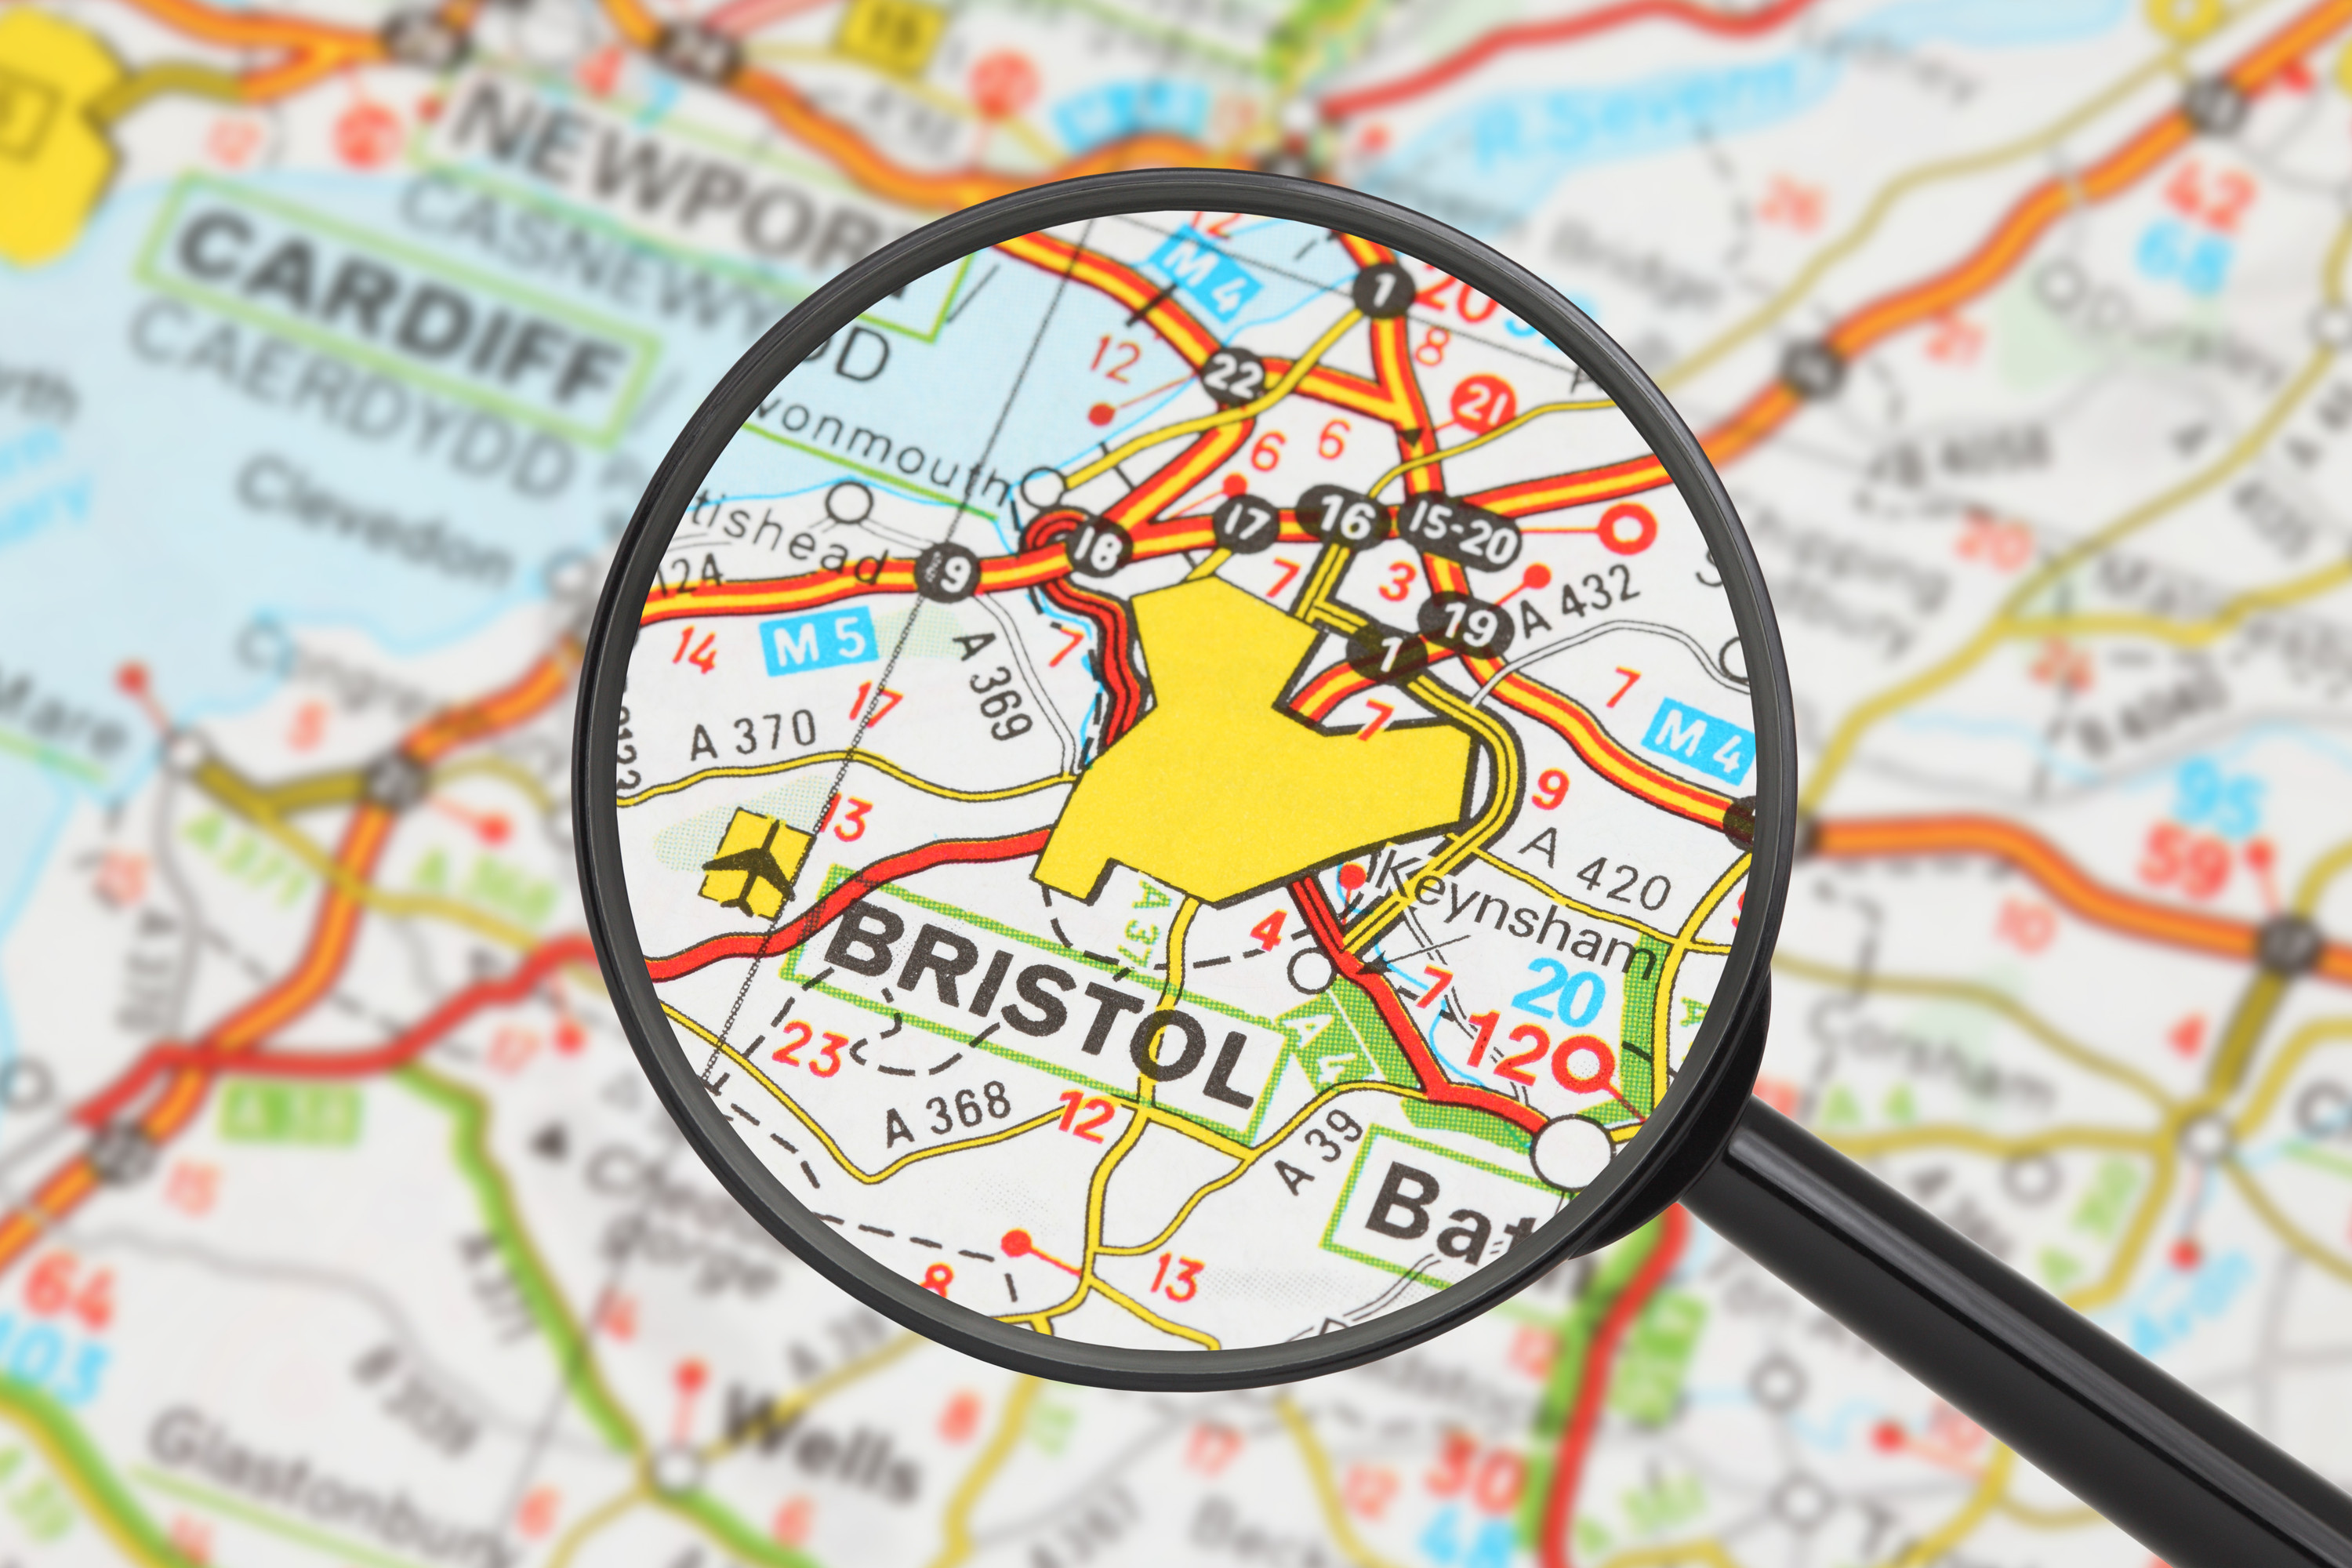 Bristol magnified on a road map